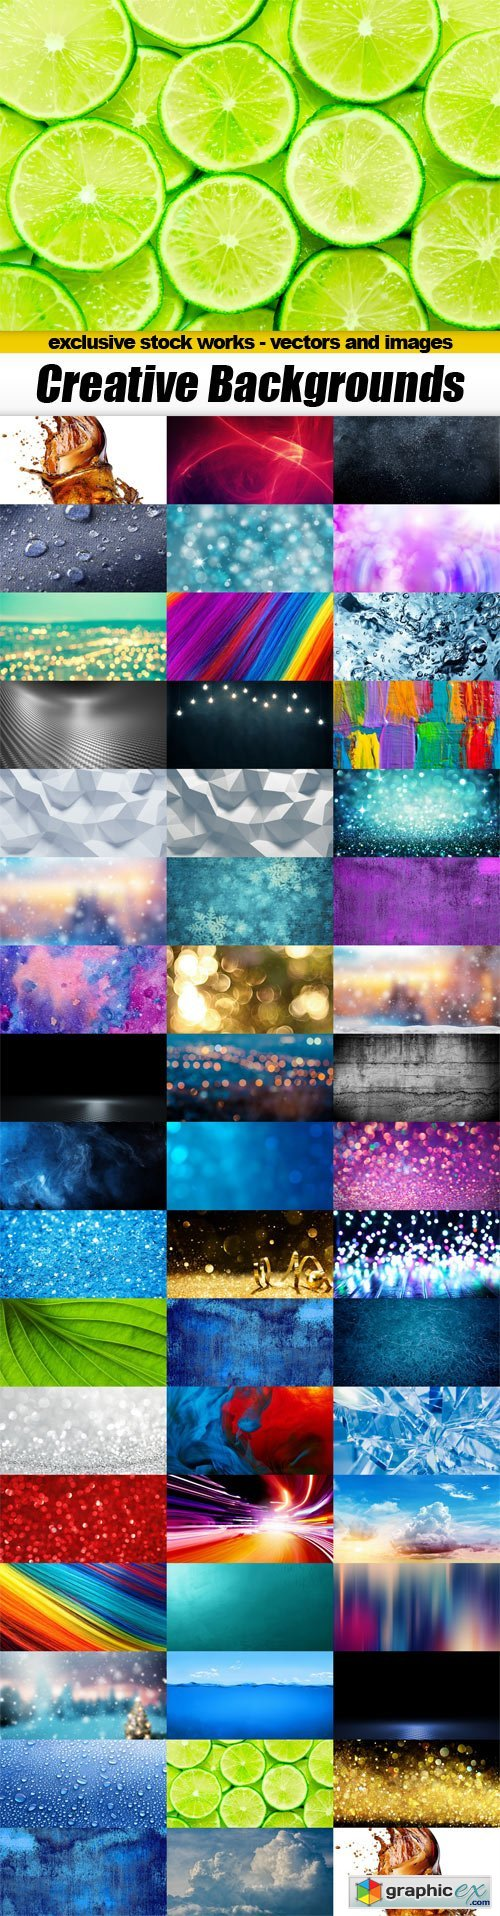 Creative Backgrounds - 50x JPEGs